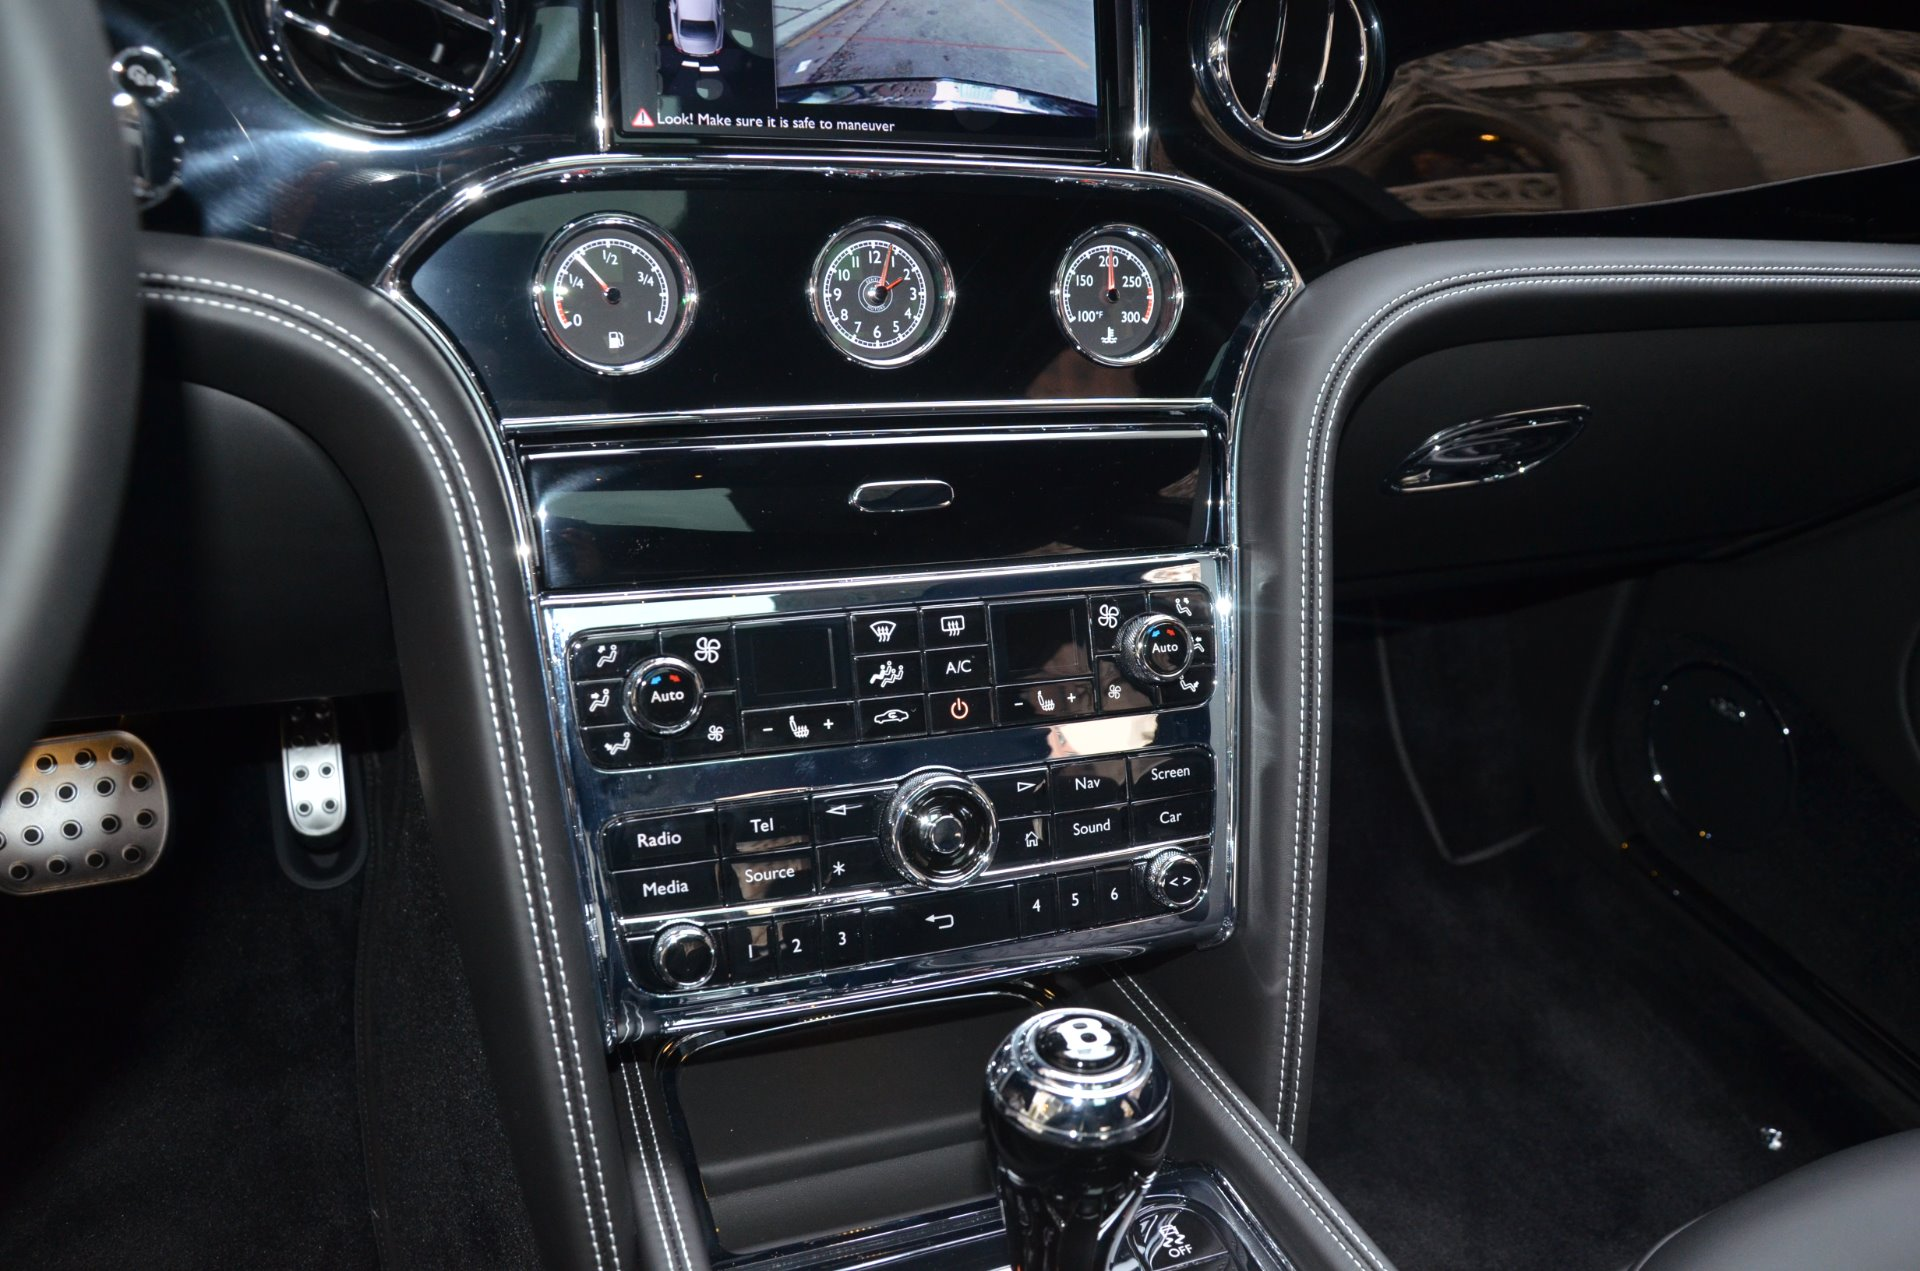 2017 Bentley Mulsanne Stock # BD220-S for sale near Chicago, IL | IL on bmw 5 series owners manual, audi a6 owners manual, bmw 3 series owners manual, aston martin vantage owners manual, chrysler 300 owners manual,